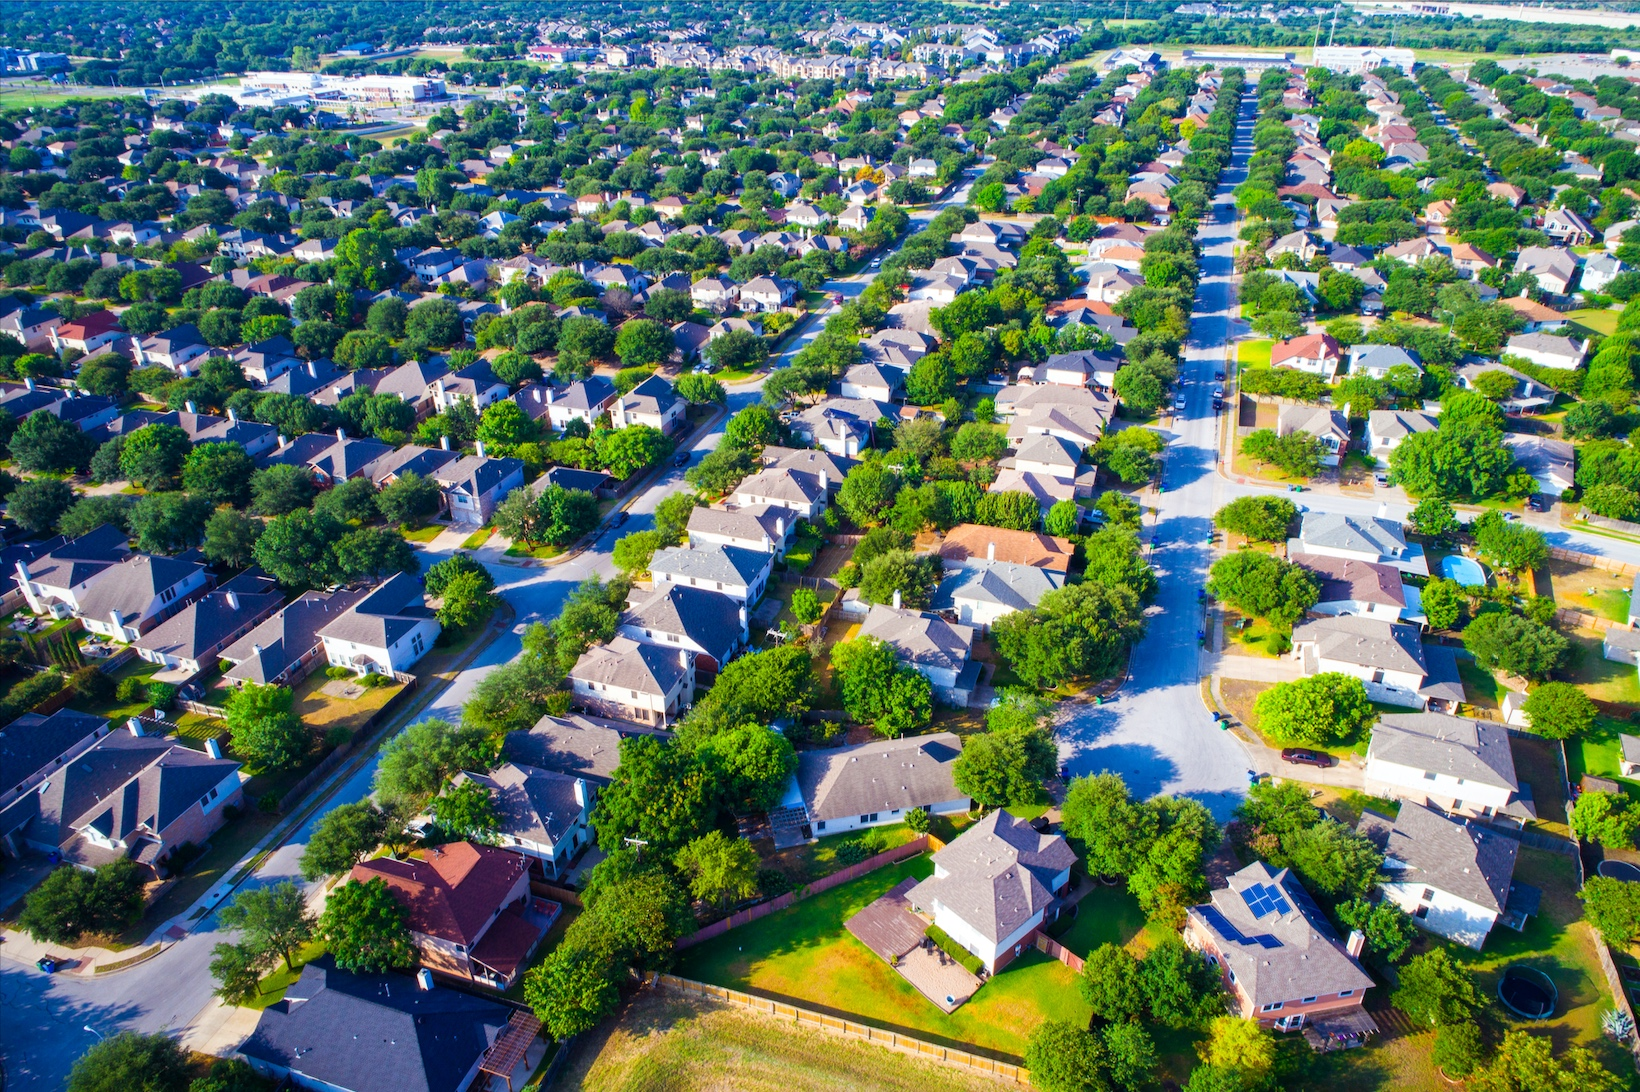 Aerial view of American neighborhood and homes.